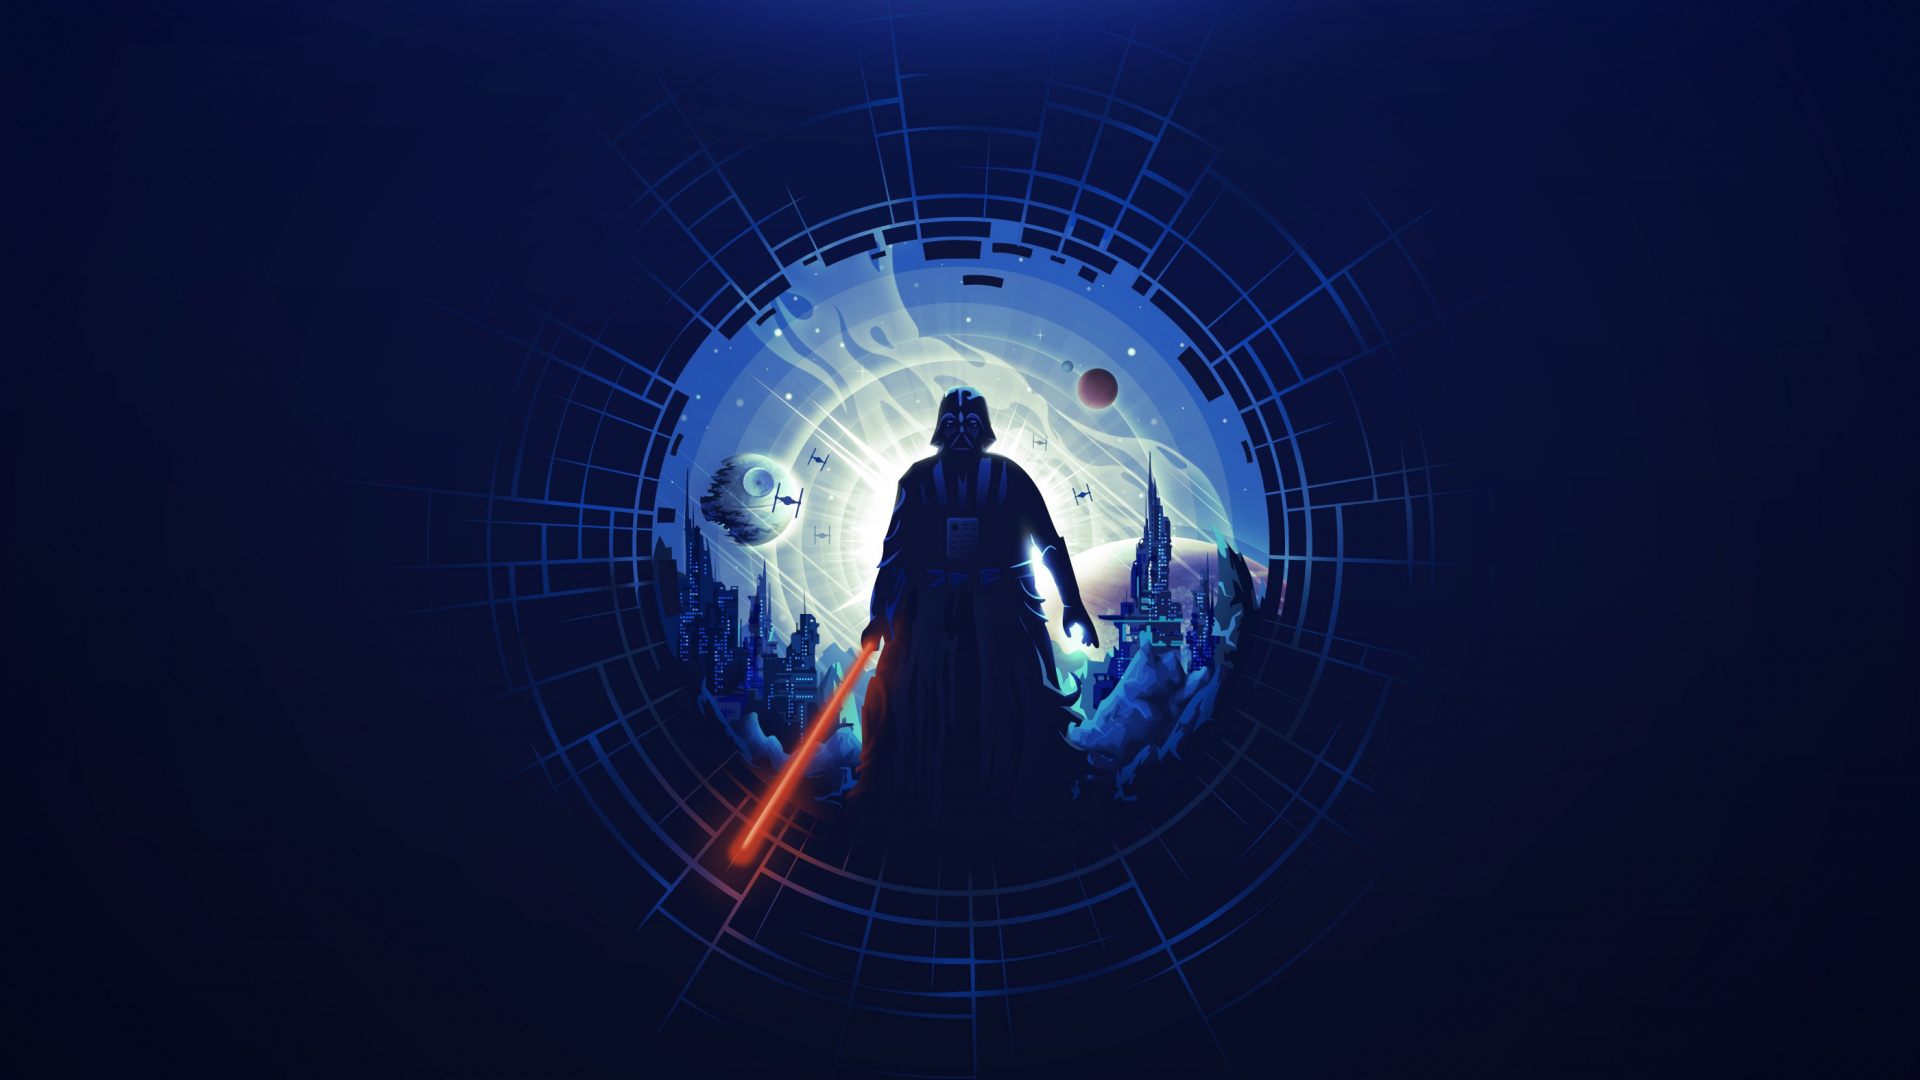 Darth Vader 1080p Wallpaper Posted By Christopher Cunningham